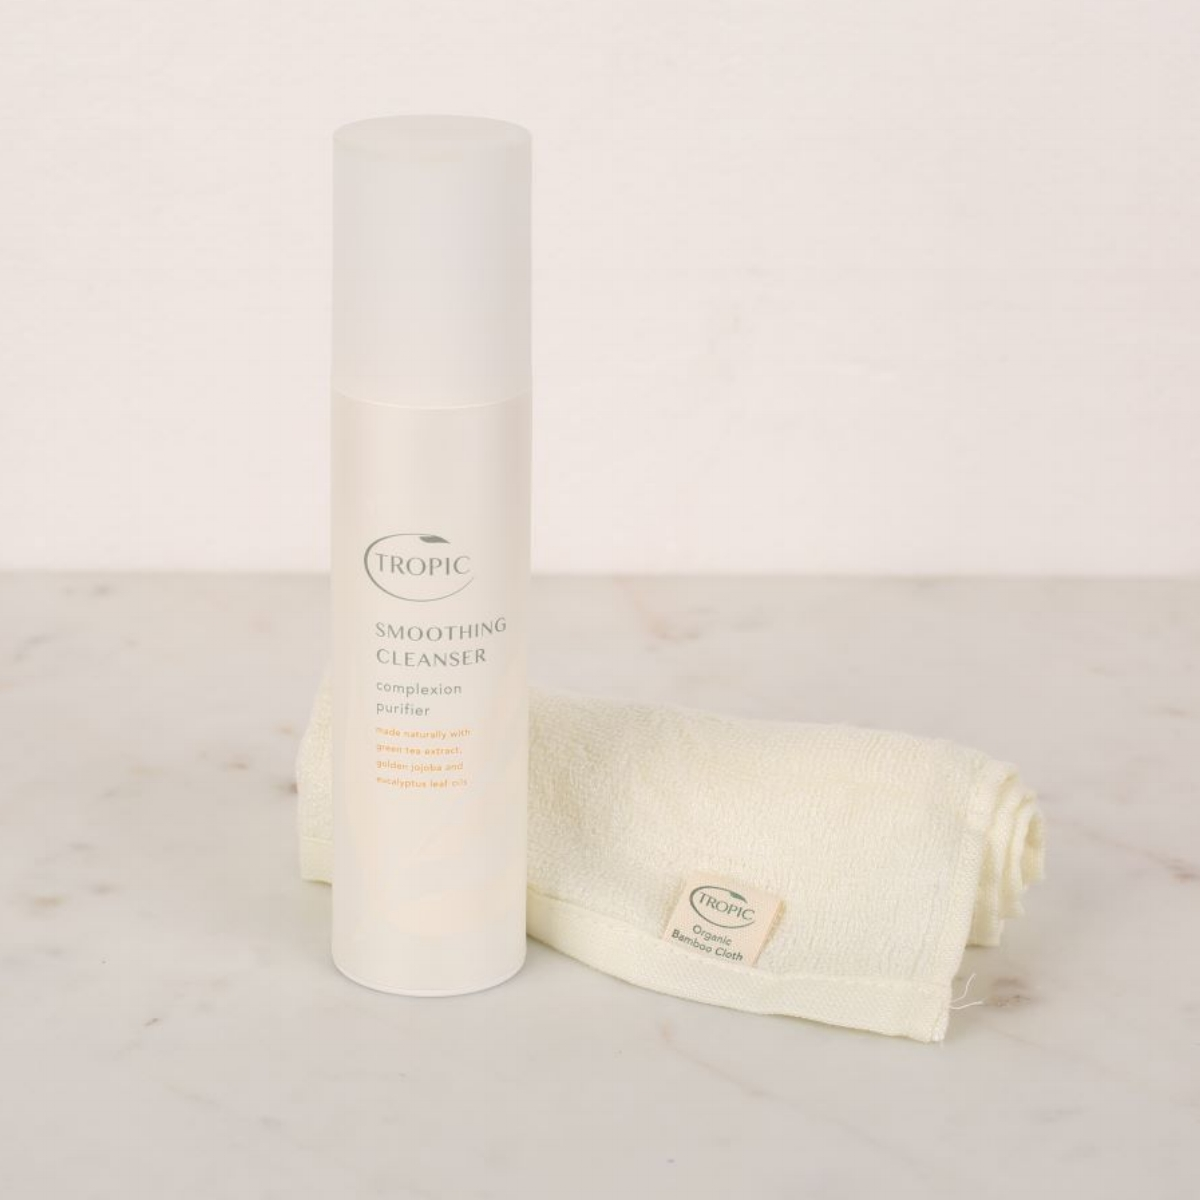 Tropic Skincare Smoothing Cleanser Complexion Purifier Bamboo Cloth Beauty Not Cruelty